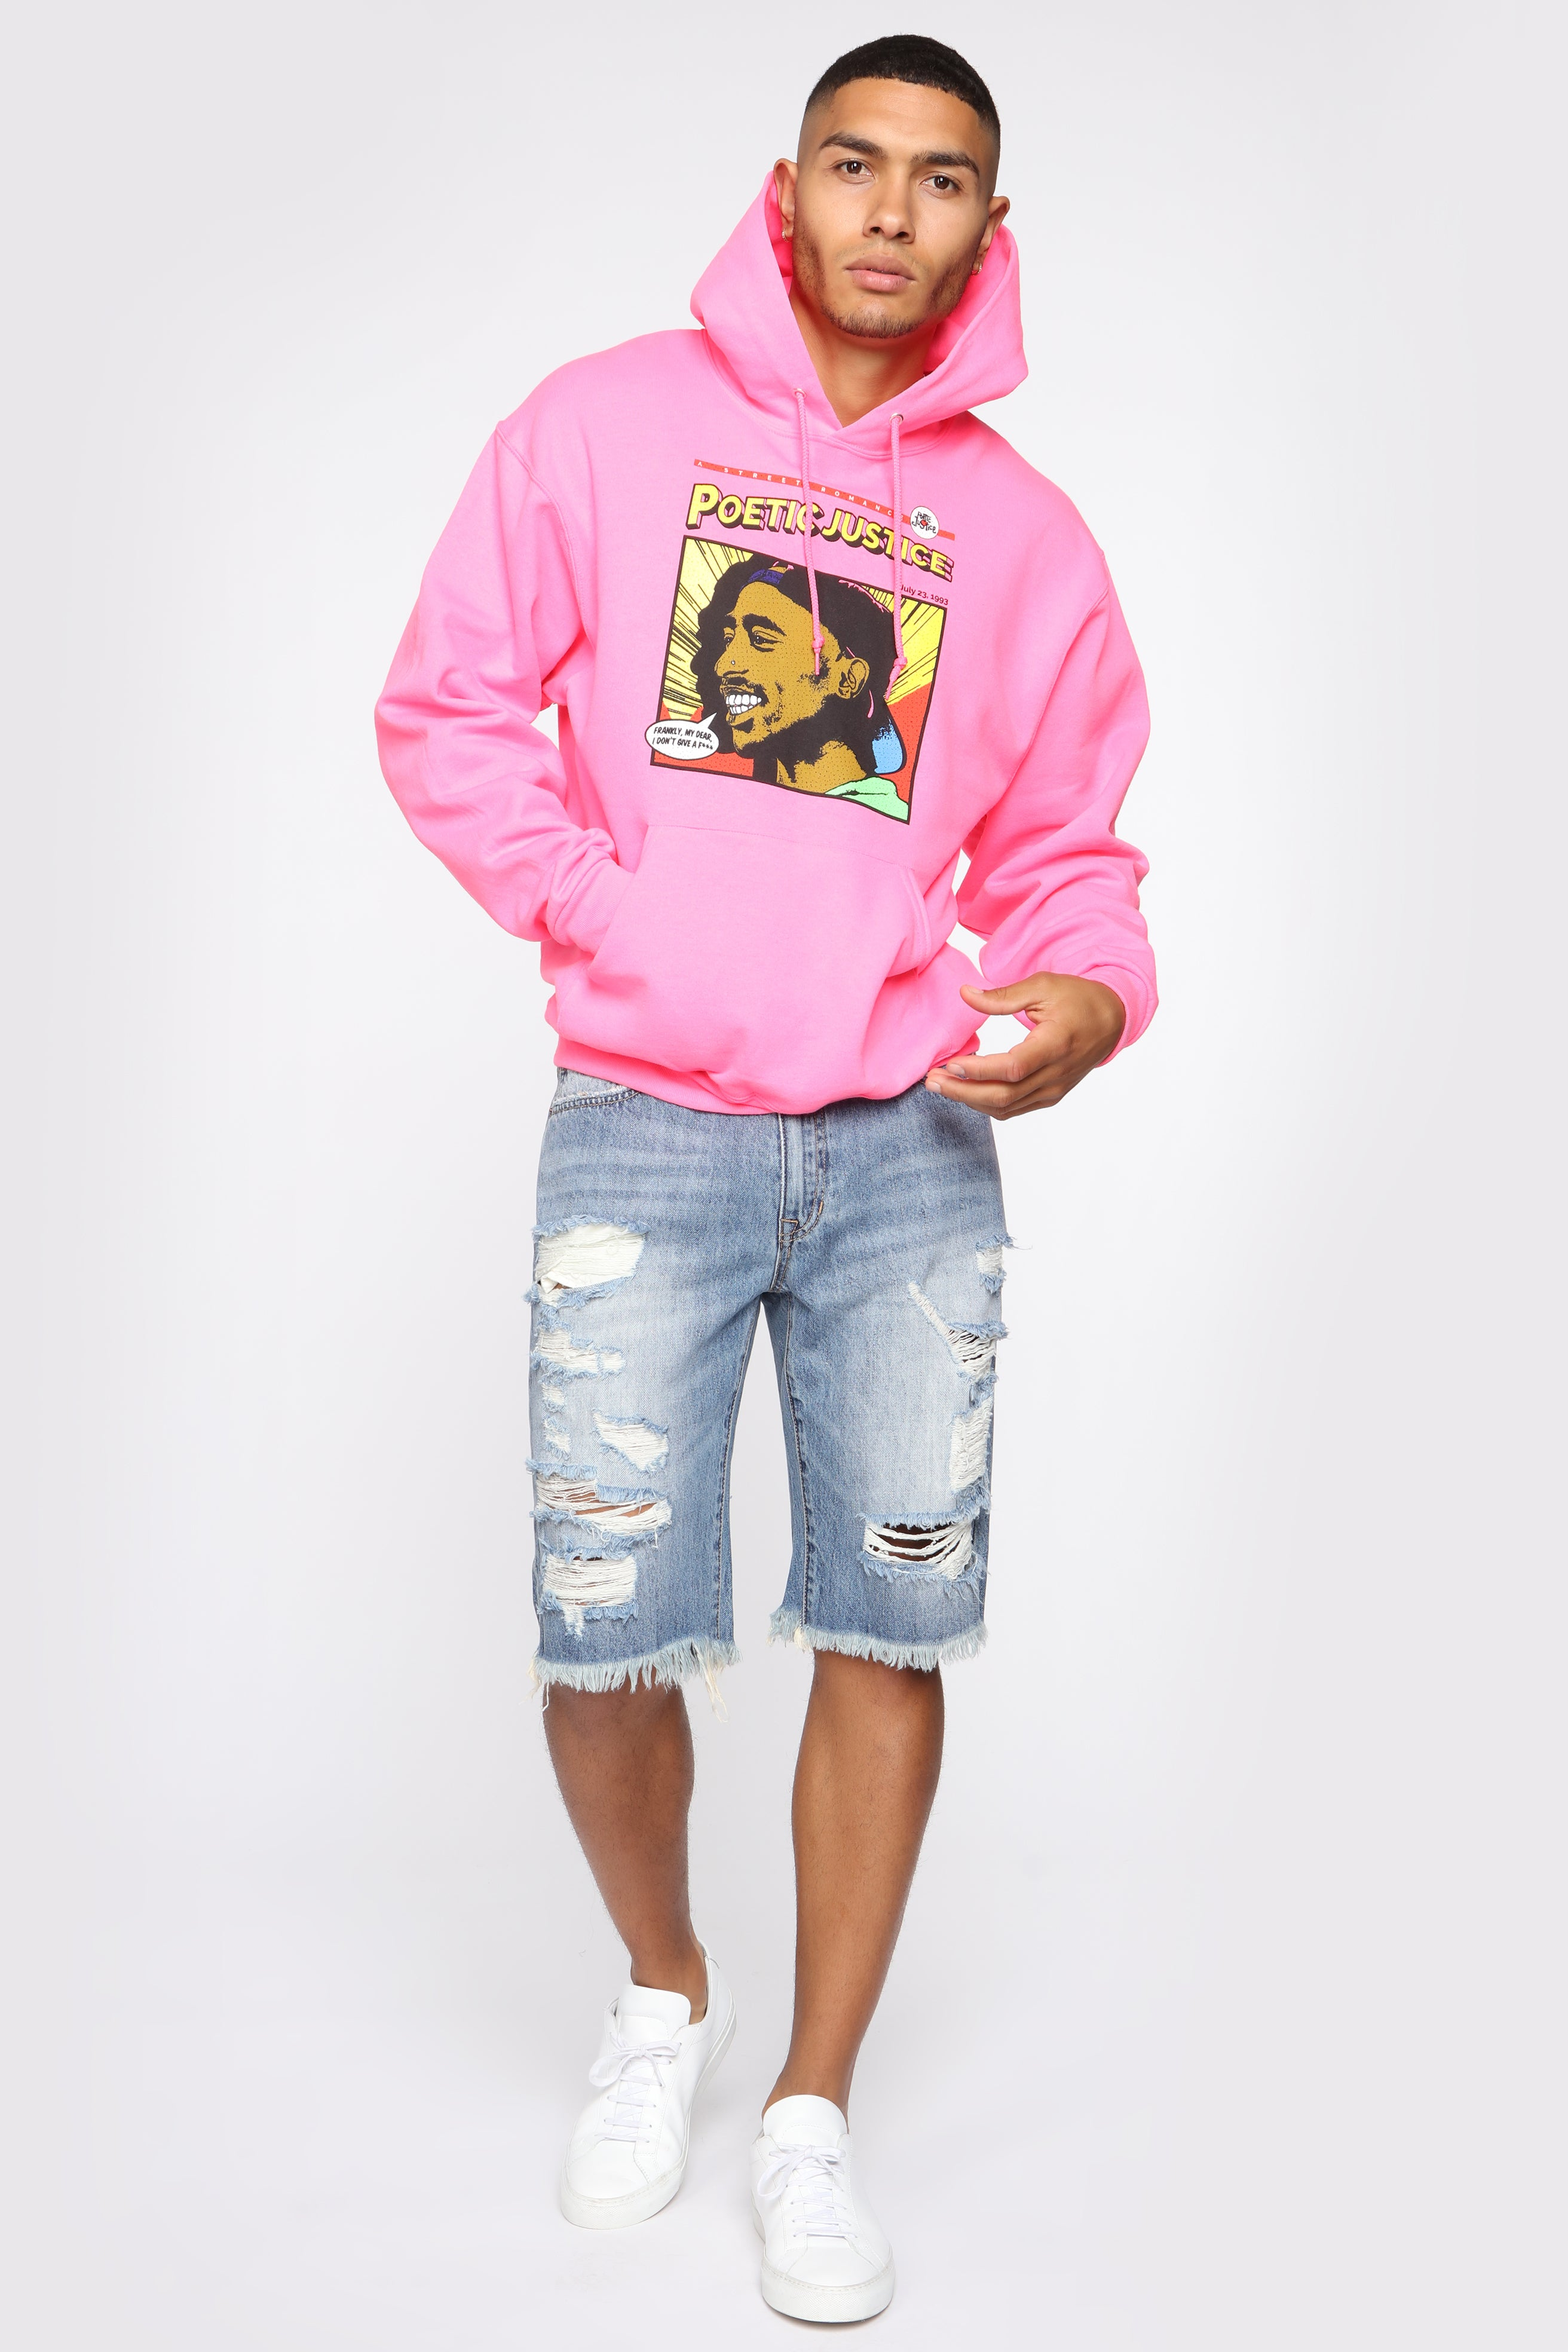 9c4b39f2c Poetic Justice Hoodie - Pink/combo